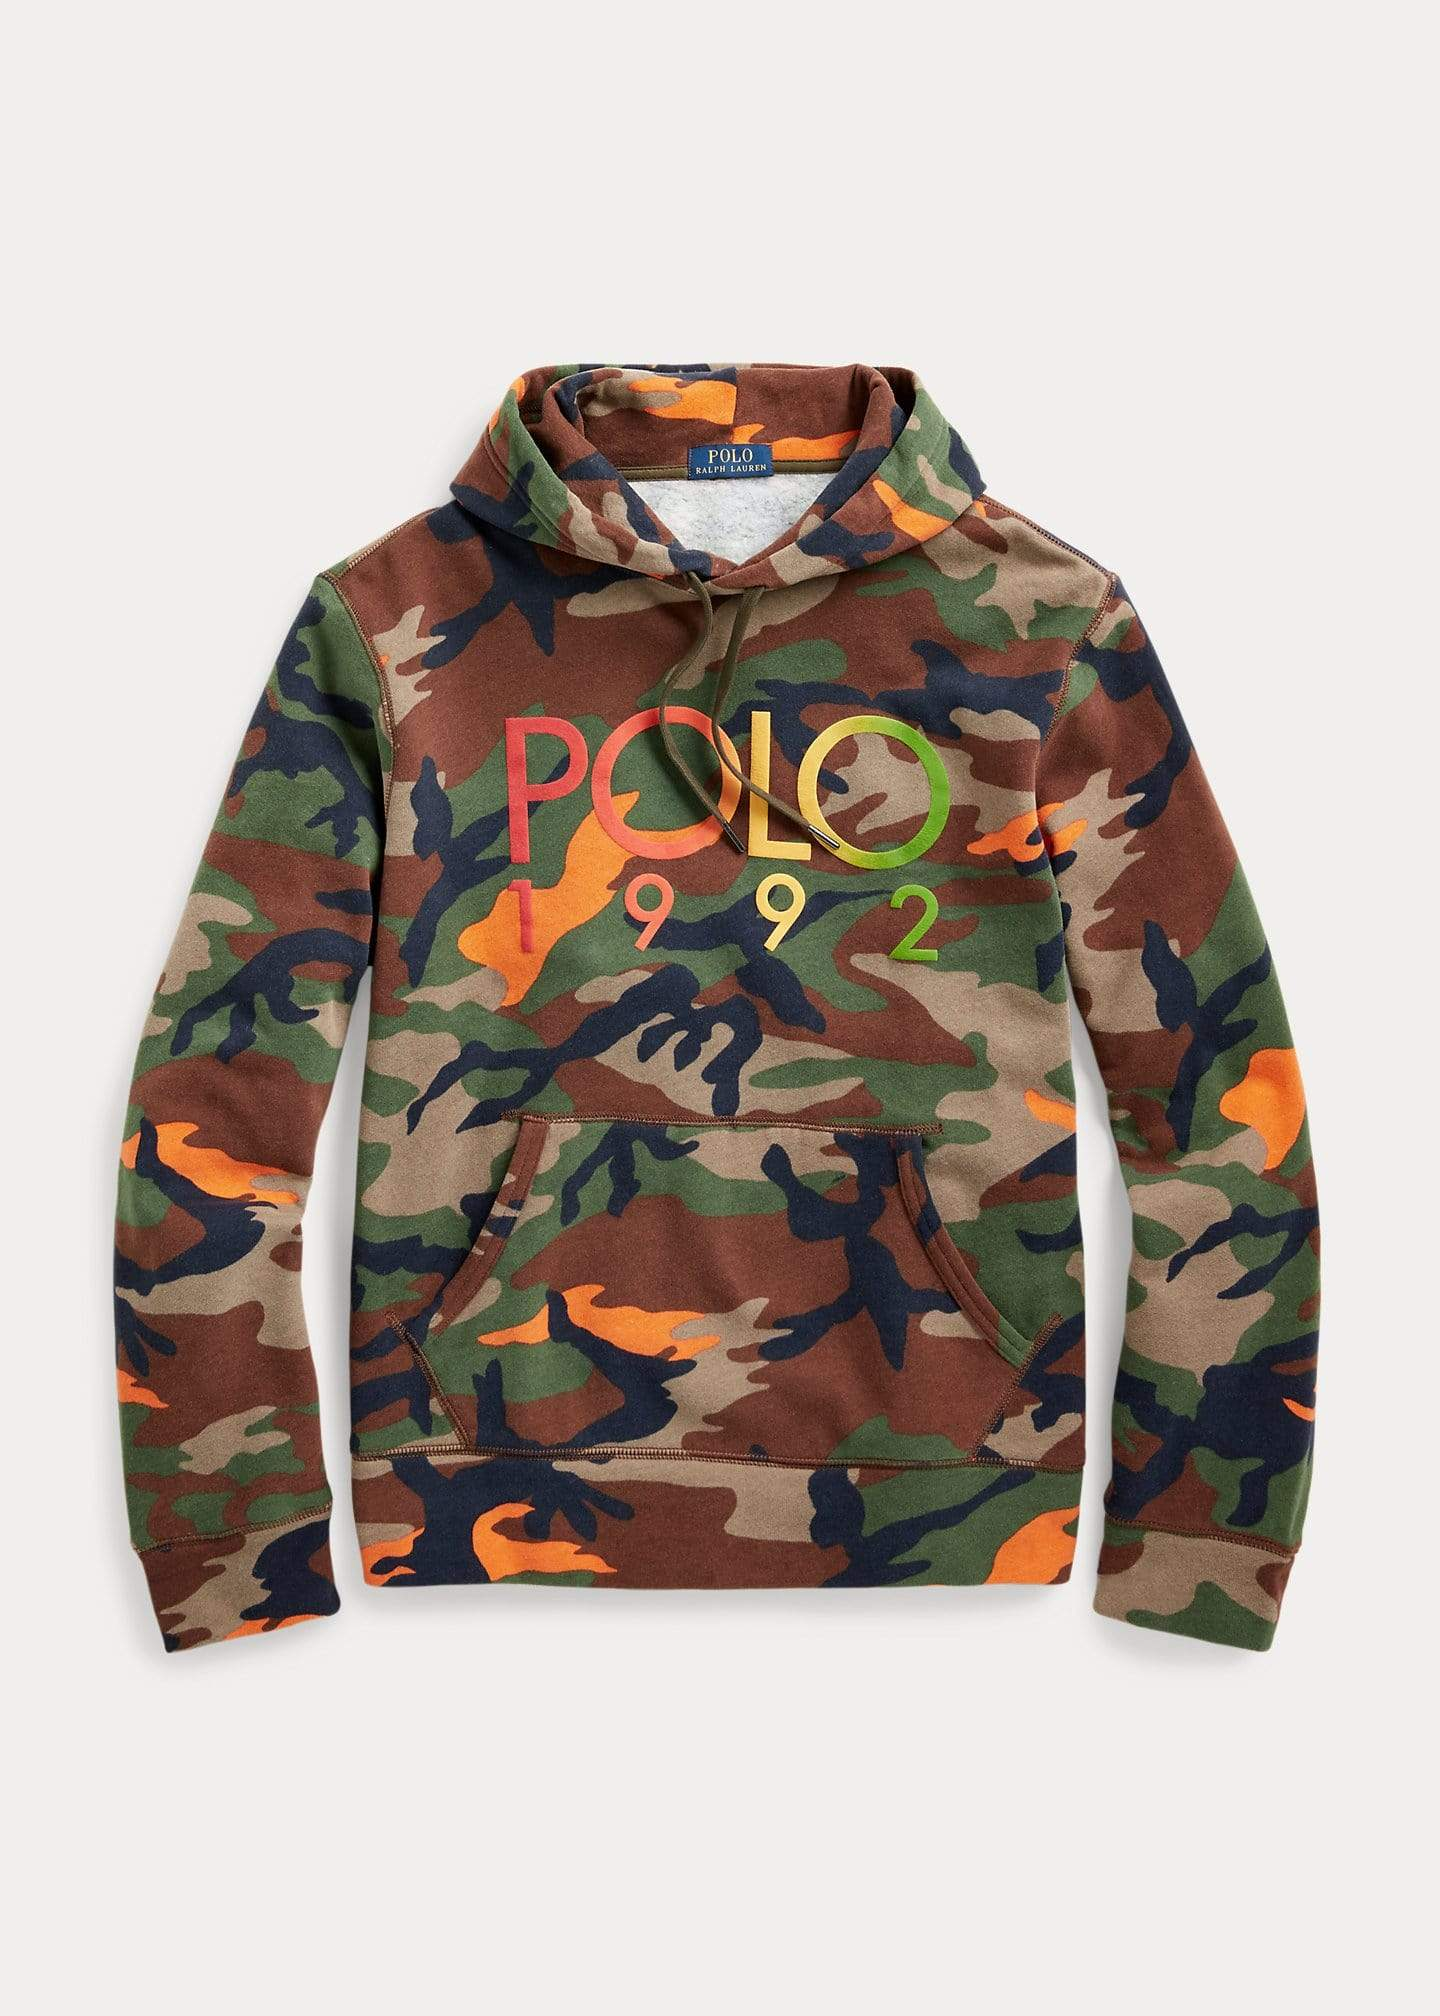 Ralph Lauren Gents Polo 1992 Camo Fleece Hoodie